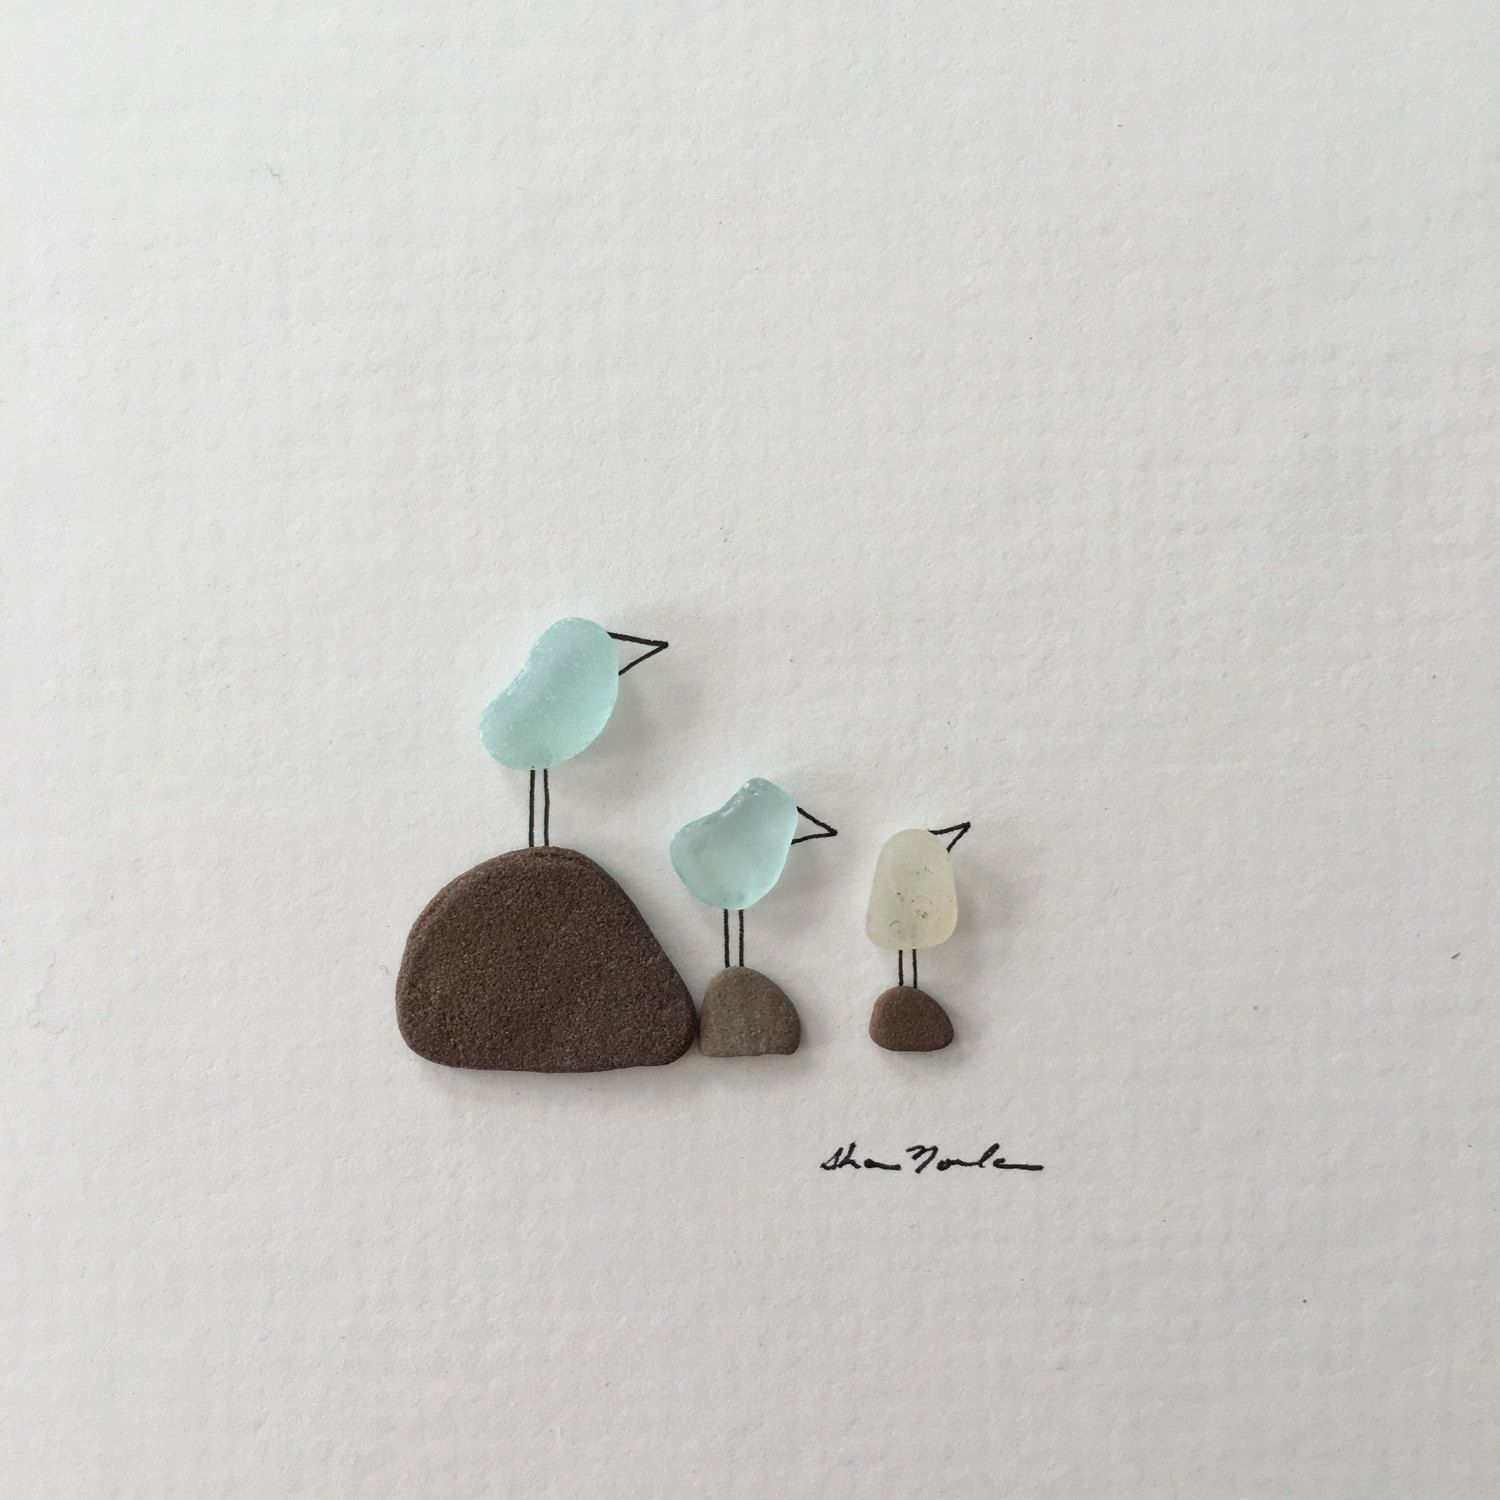 5 by 5 Mini unframed pebble art picture by sharon by PebbleArt ...